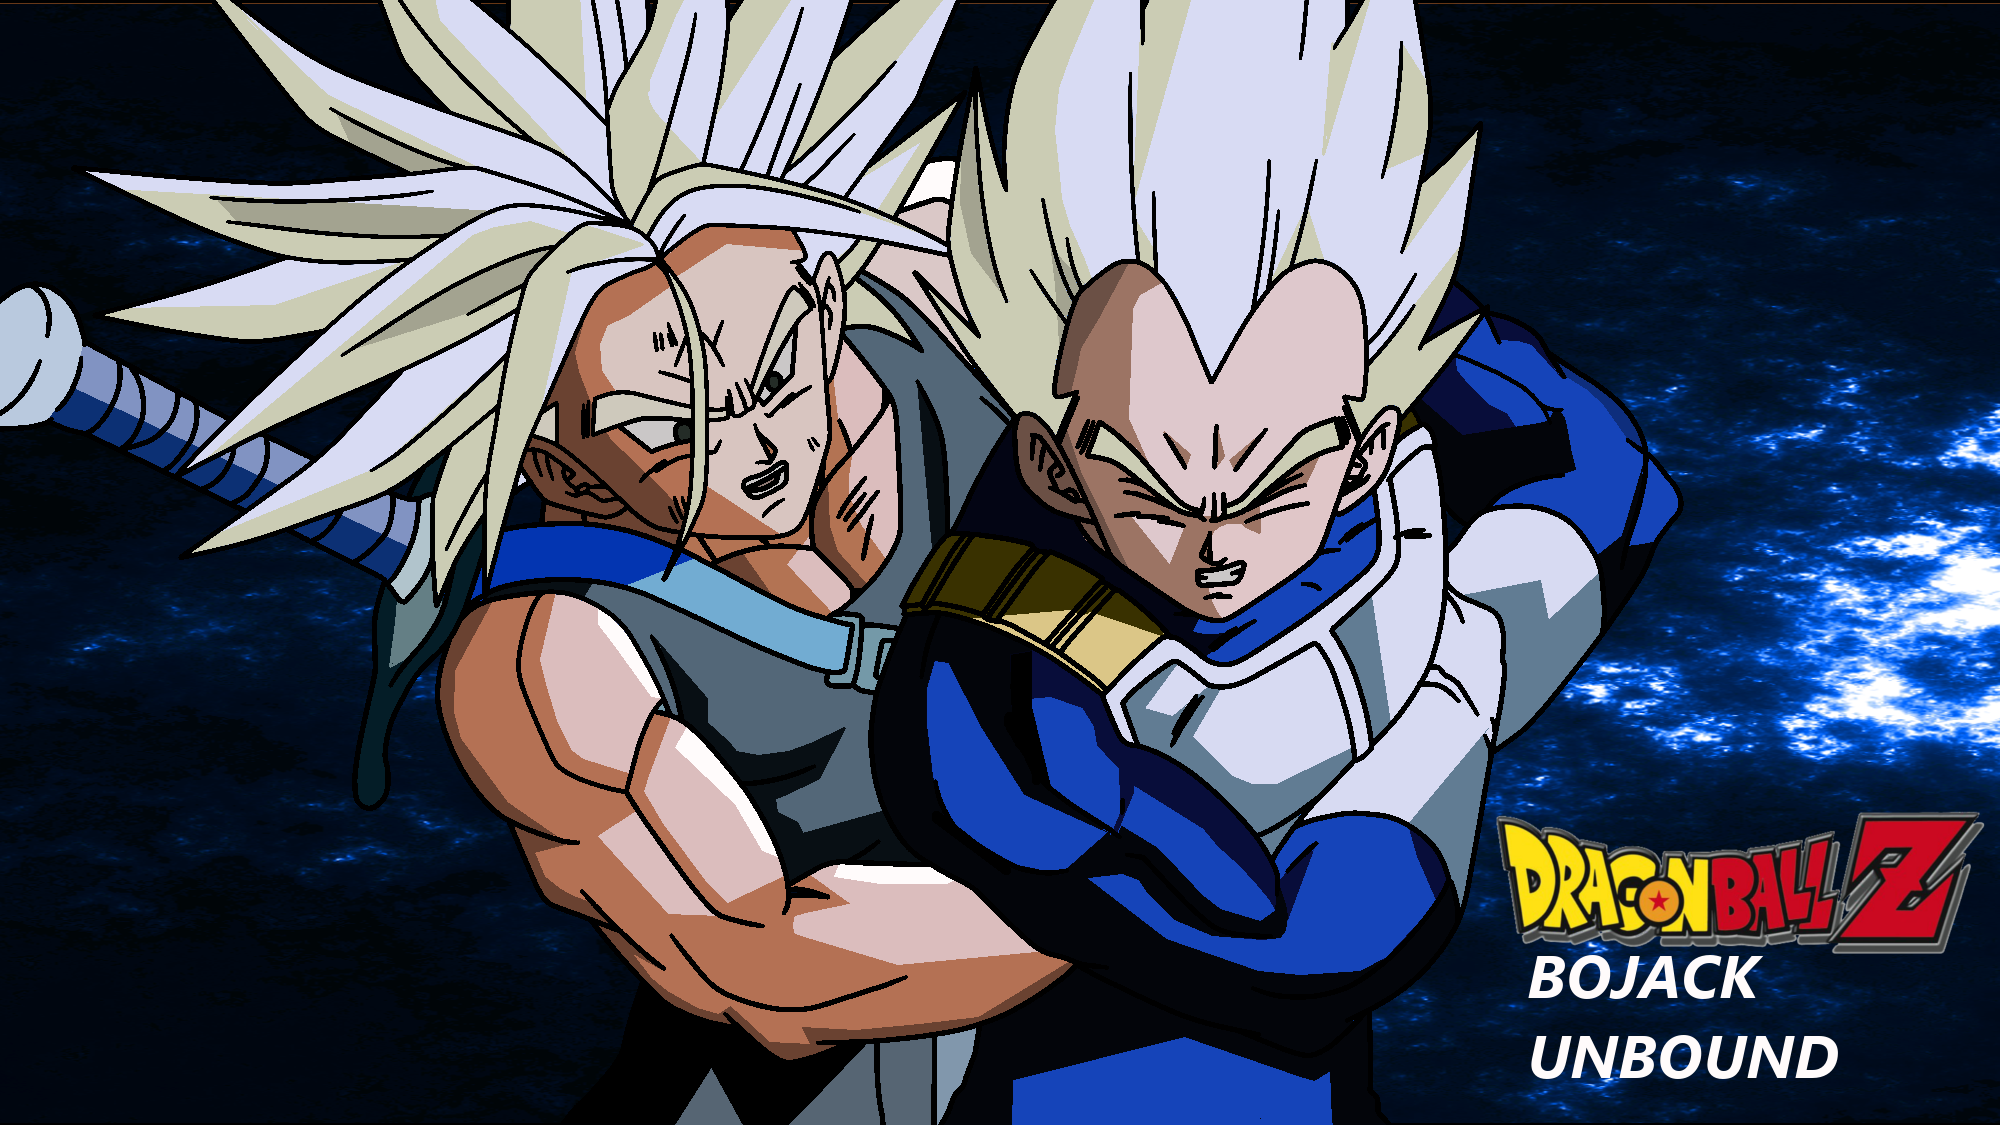 DBZ Bojack Unbound Vegeta and Trunks by Tp1mde on DeviantArt